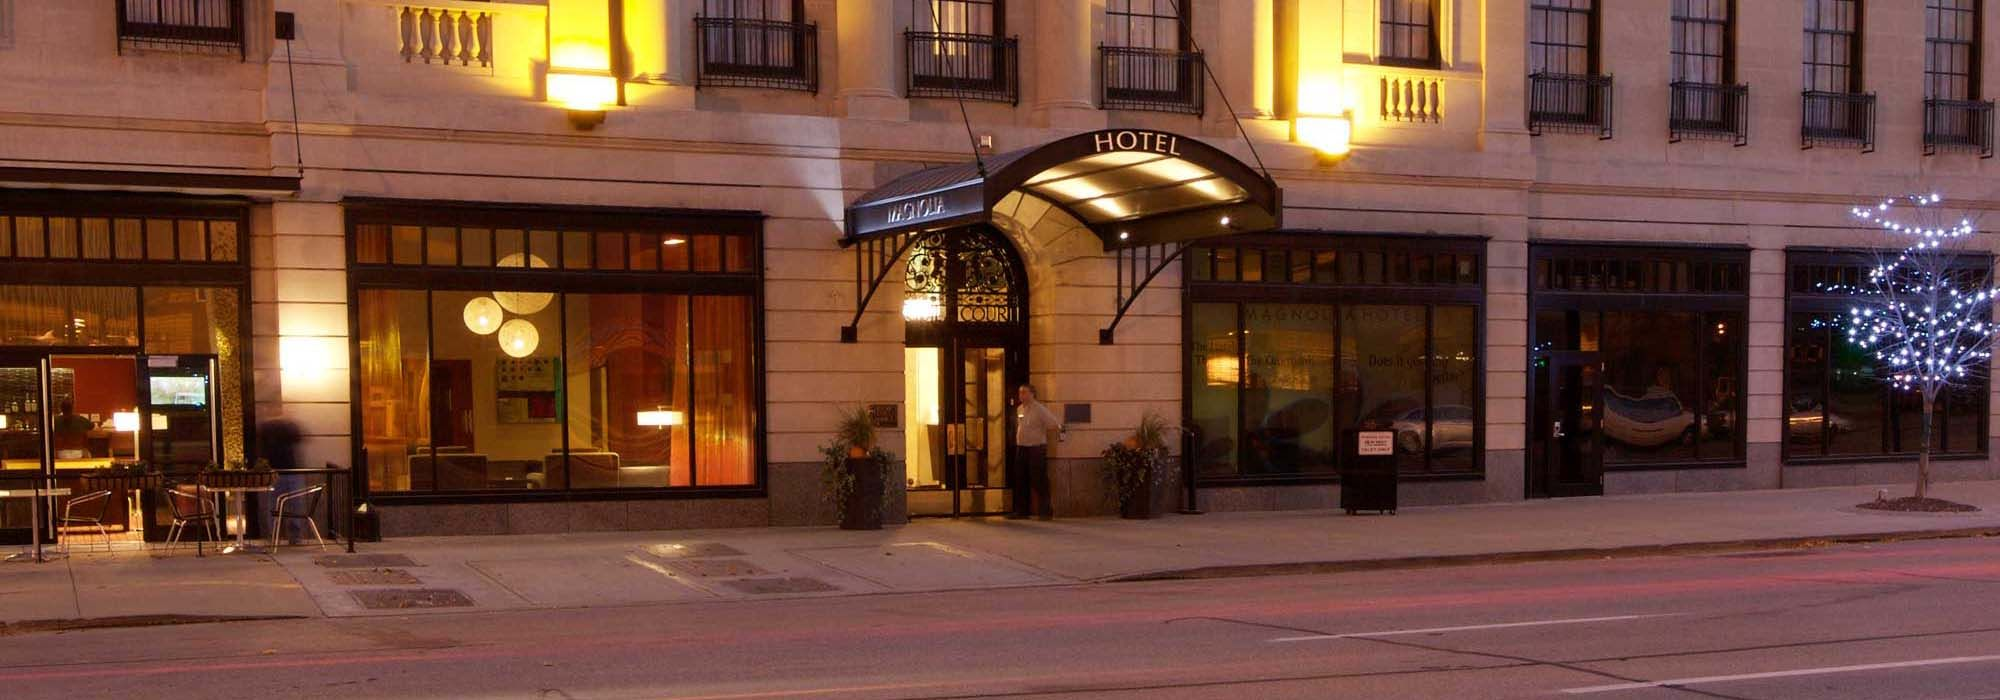 Magnolia Hotel Omaha The Beautiful Finished An Extensive Renovation In September 2007 Transforming Into Jewel Of D